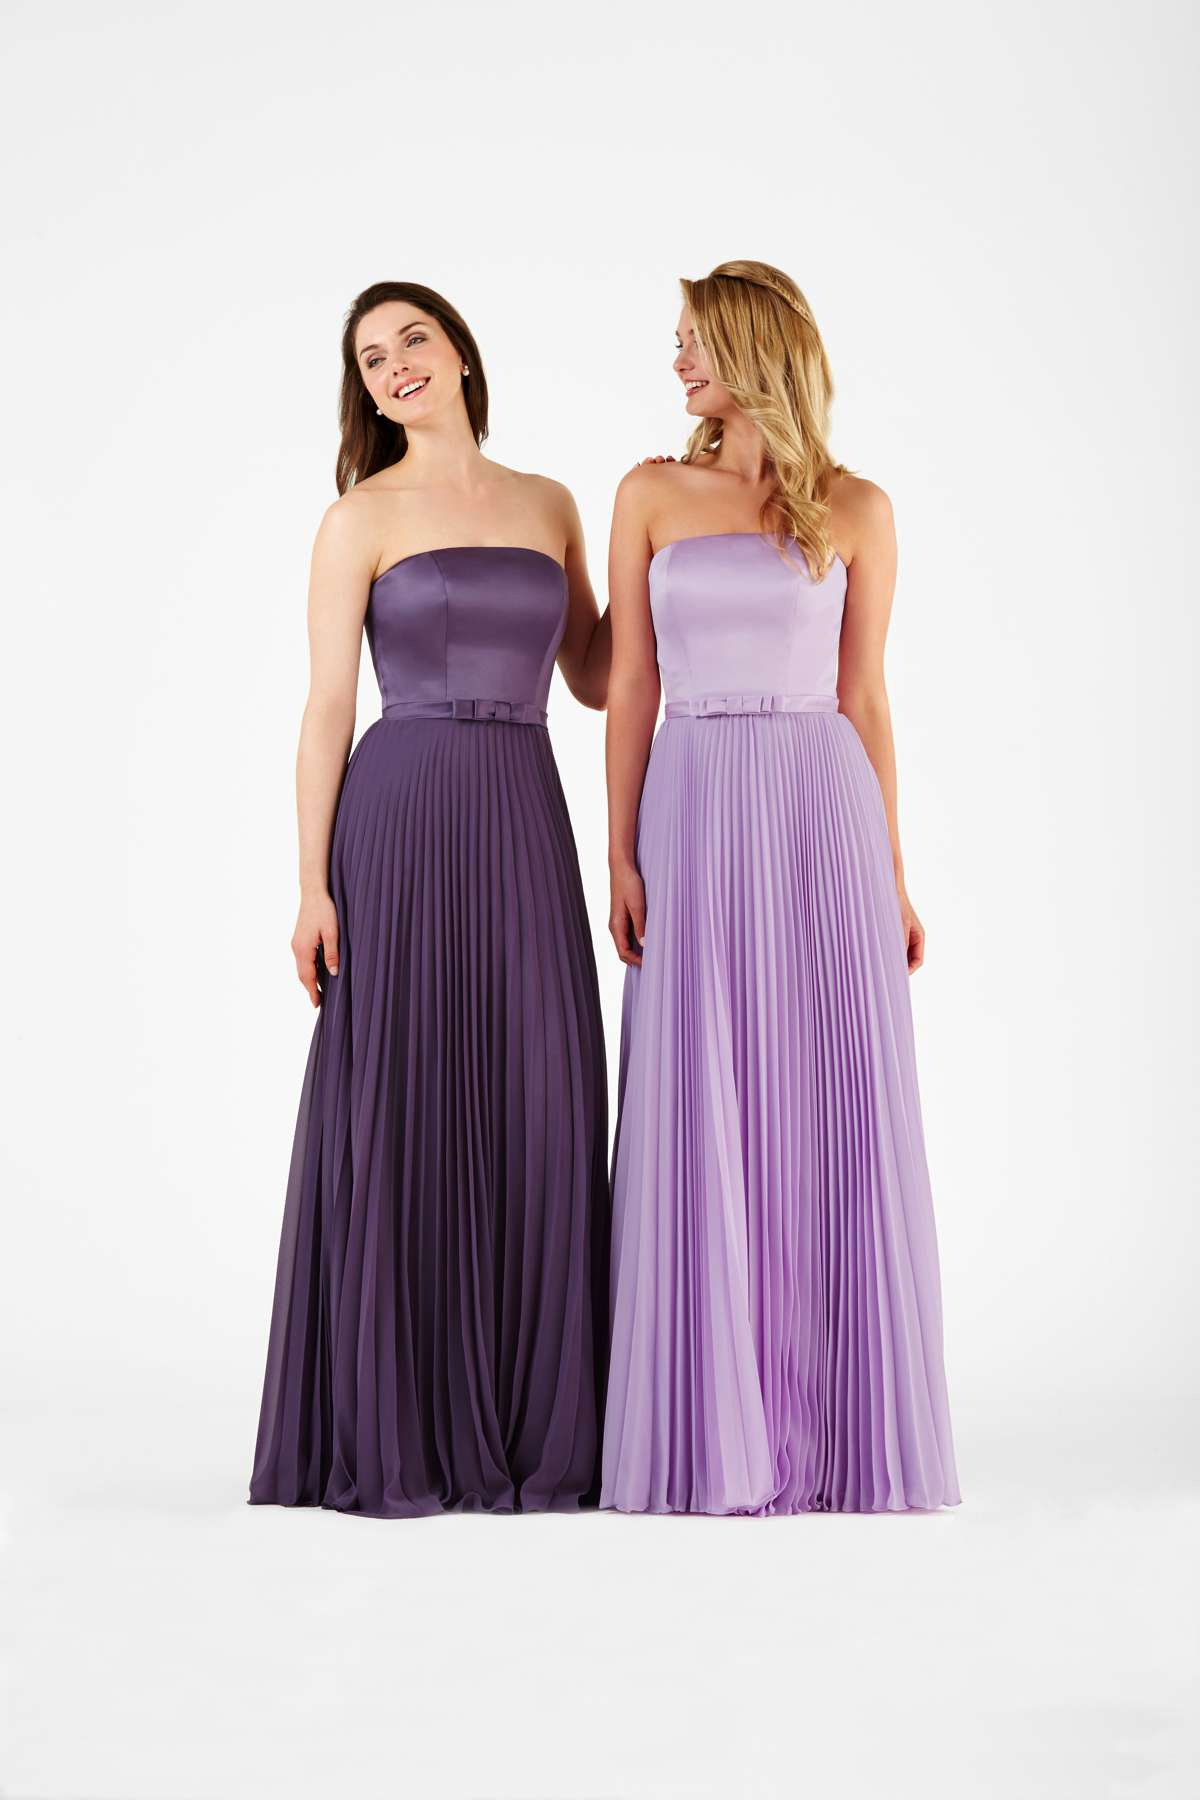 Beautiful bridesmaid gowns from EbonyRose Designs - Love Our Wedding